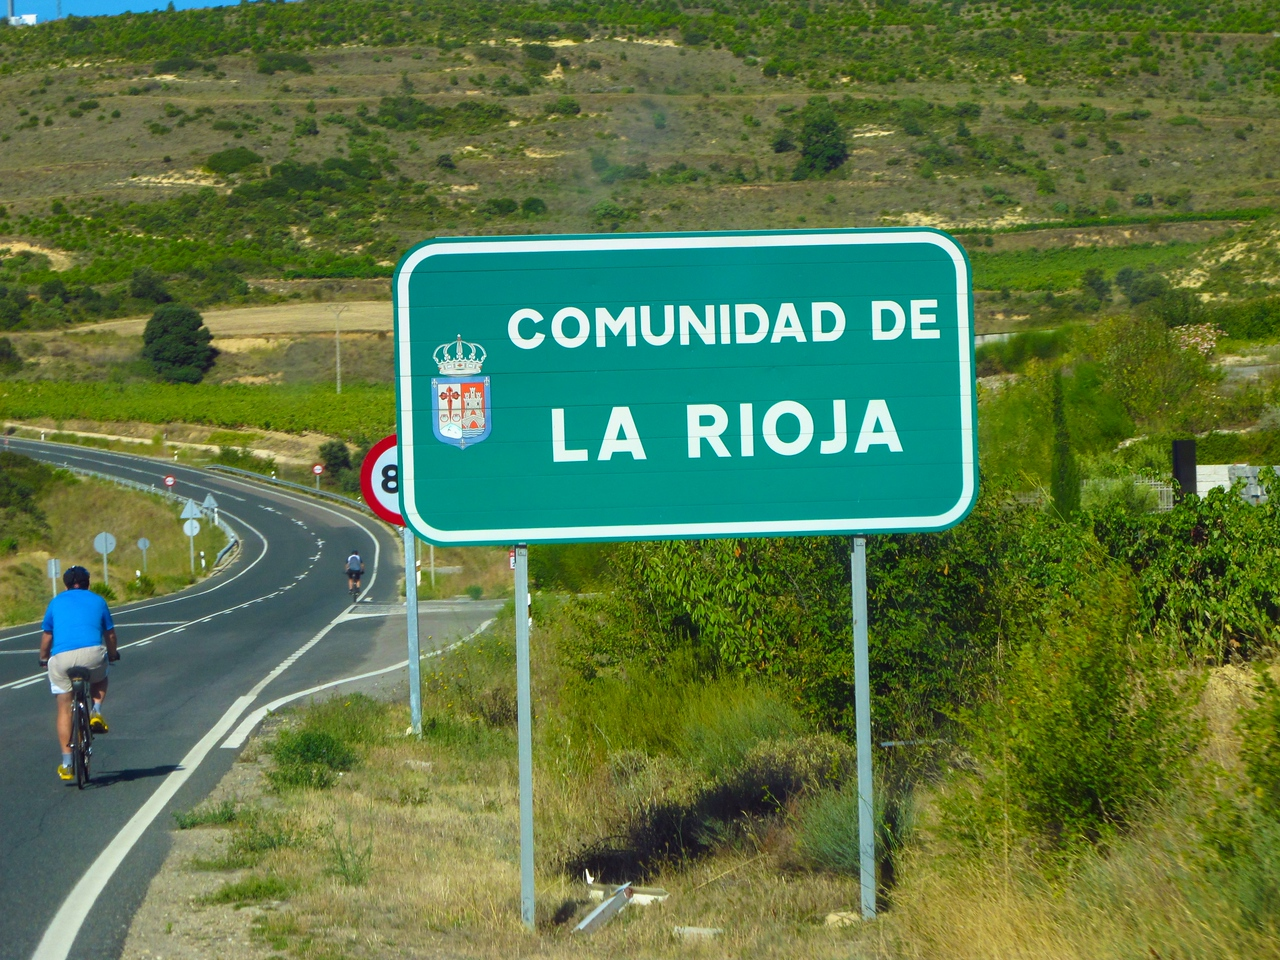 Rioja was made into an autonomous community during the reorganization following the democratic transition after the death of Francisco Franco. It is the second-smallest autonomous community in Spain and has the smallest population. Half of its 174 towns have populations under 200. Half of its citizens live in the capital of Logrono.<br /> <br /> Rioja is made up of three regions. Rioja Alavesa,  Rioja Alta and Rioja Baja.  They are that Spain's prime wine-producing area.